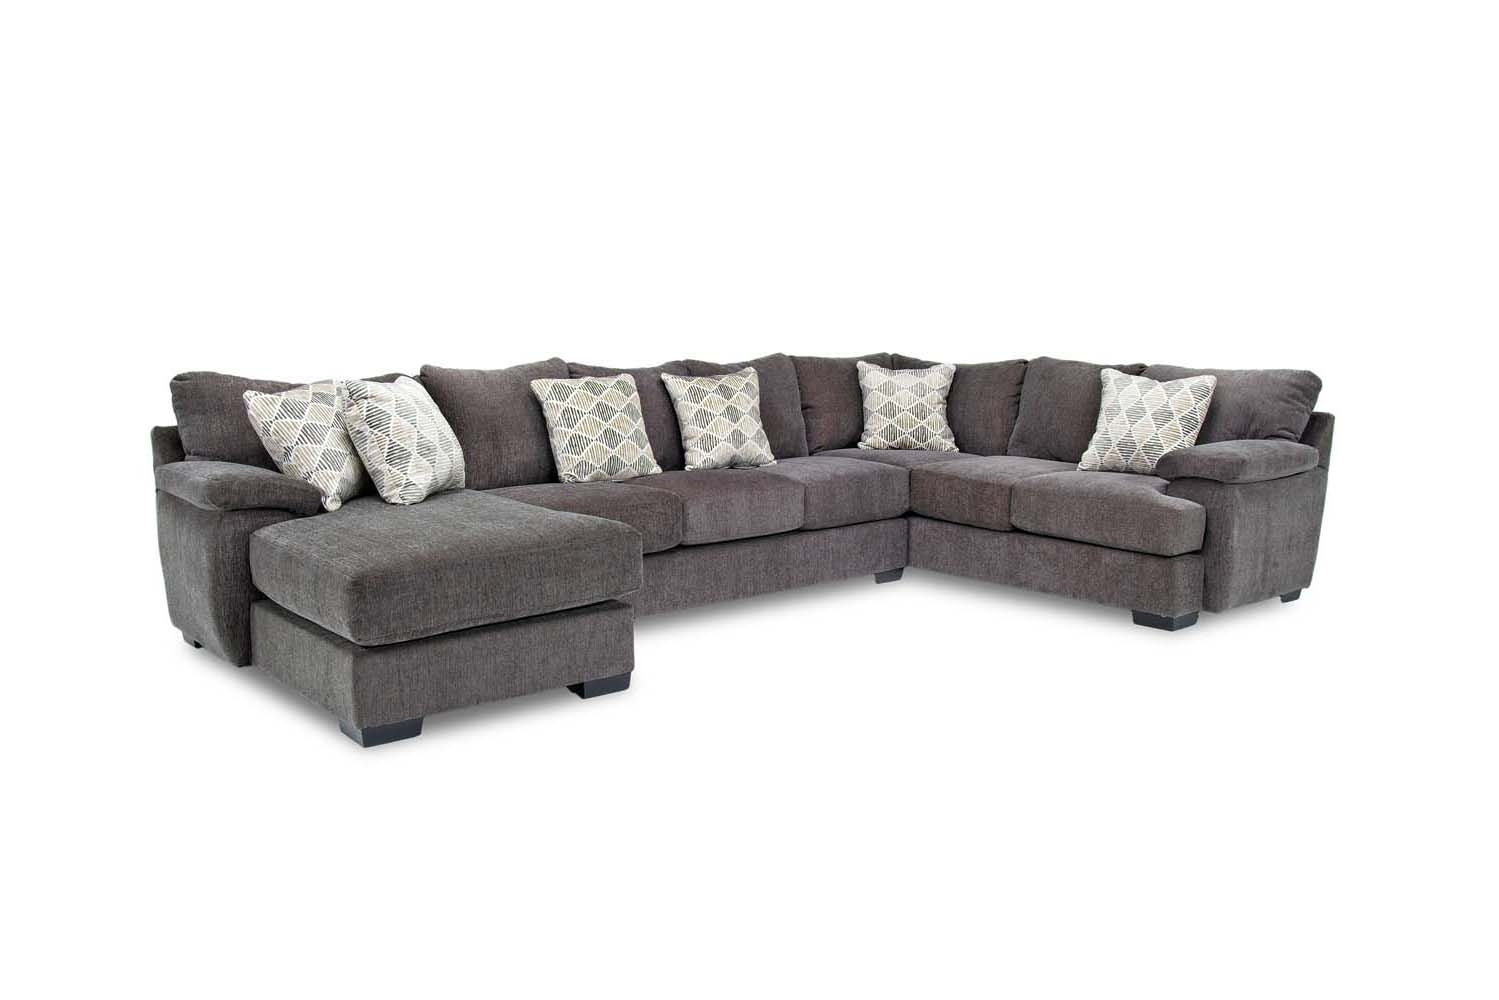 Outstanding Furniture Store Near You San Marcos Ca 92069 Mor Furniture Pdpeps Interior Chair Design Pdpepsorg